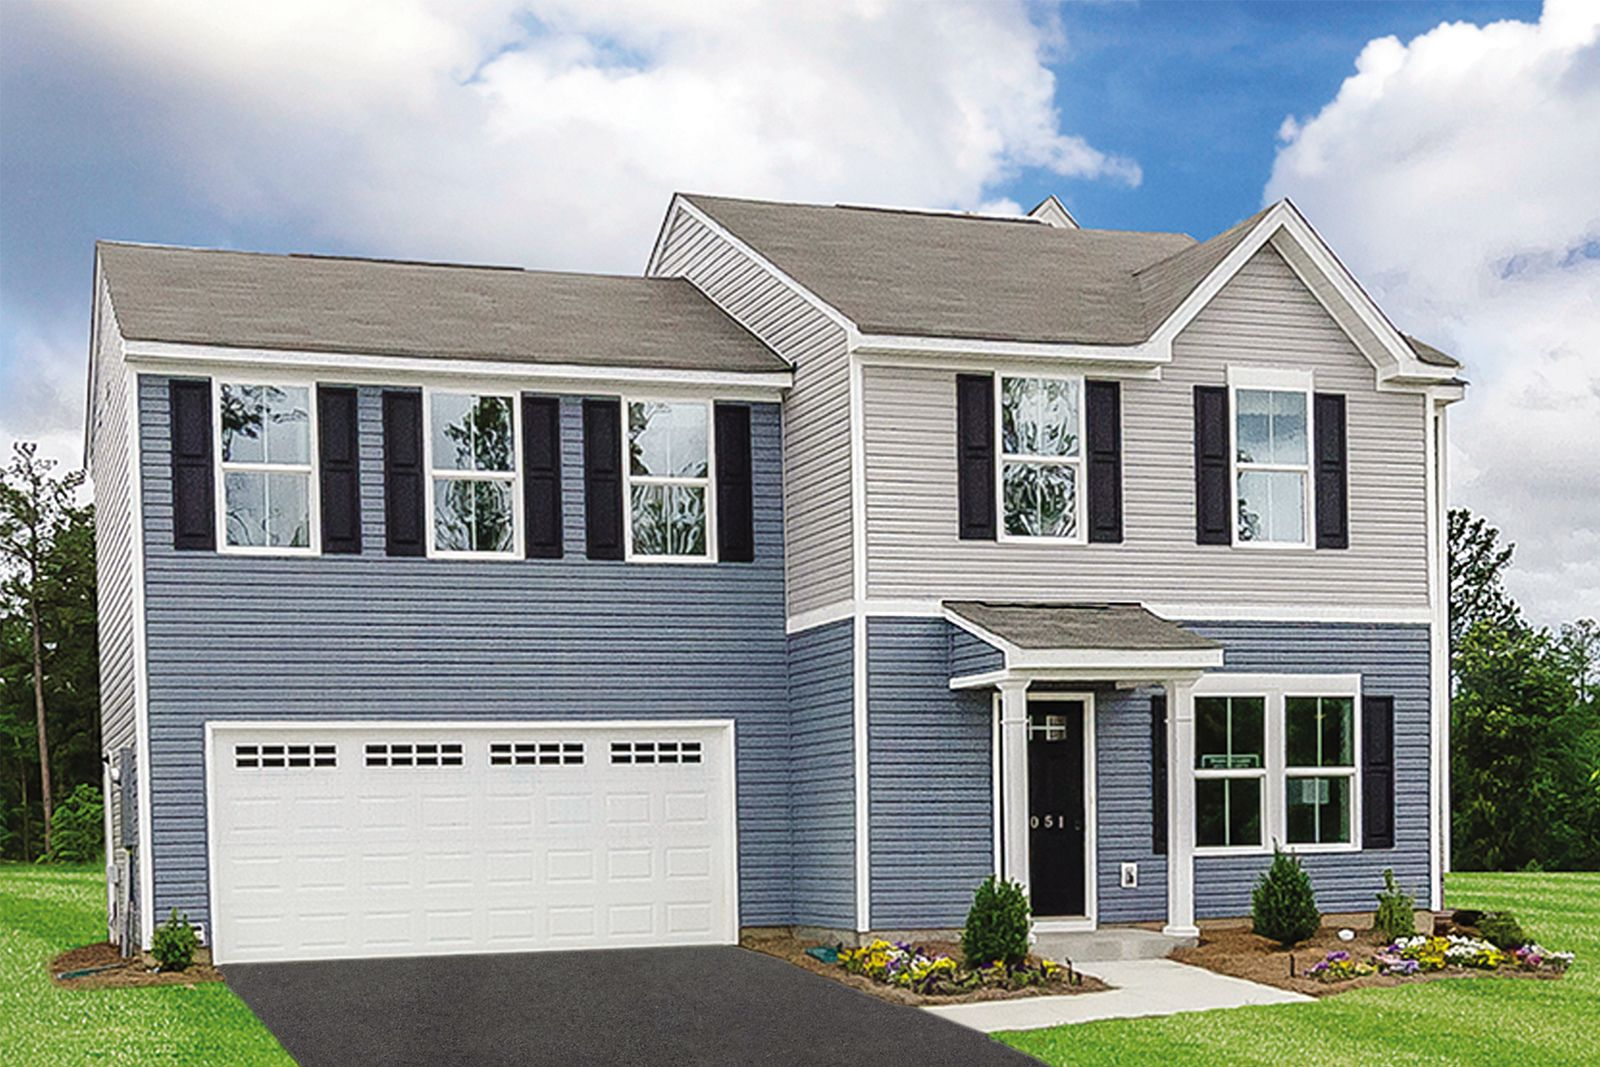 Welcome to Braycen Pines:The only community in South Jersey where you can own a brand new, 3-bedroom, single family home from the upper $200s.Schedule your visit today!